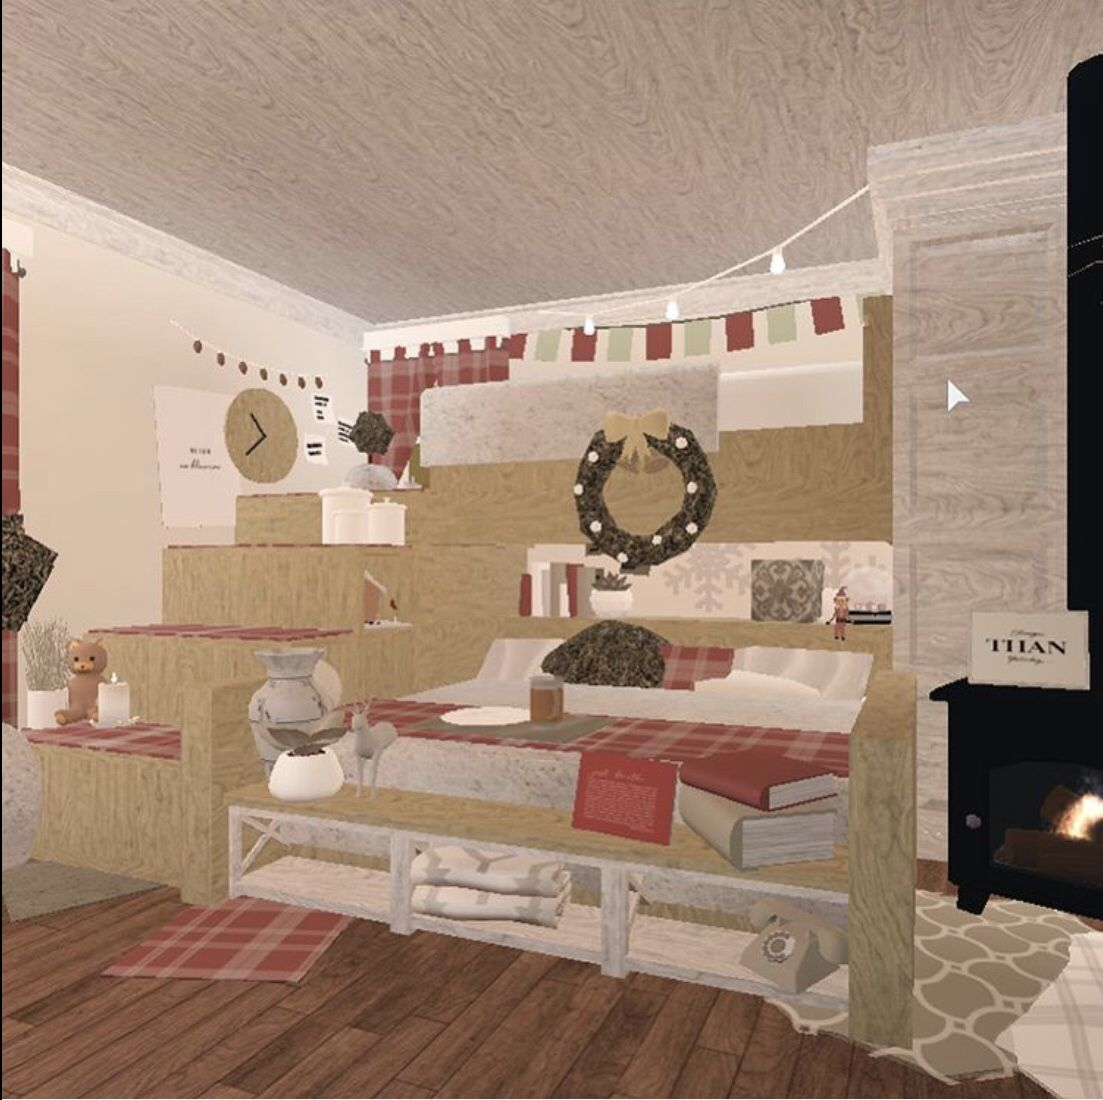 Christmas Room Not Mine 3 House Decorating Ideas Apartments Bedroom House Plans Tiny House Bedroom